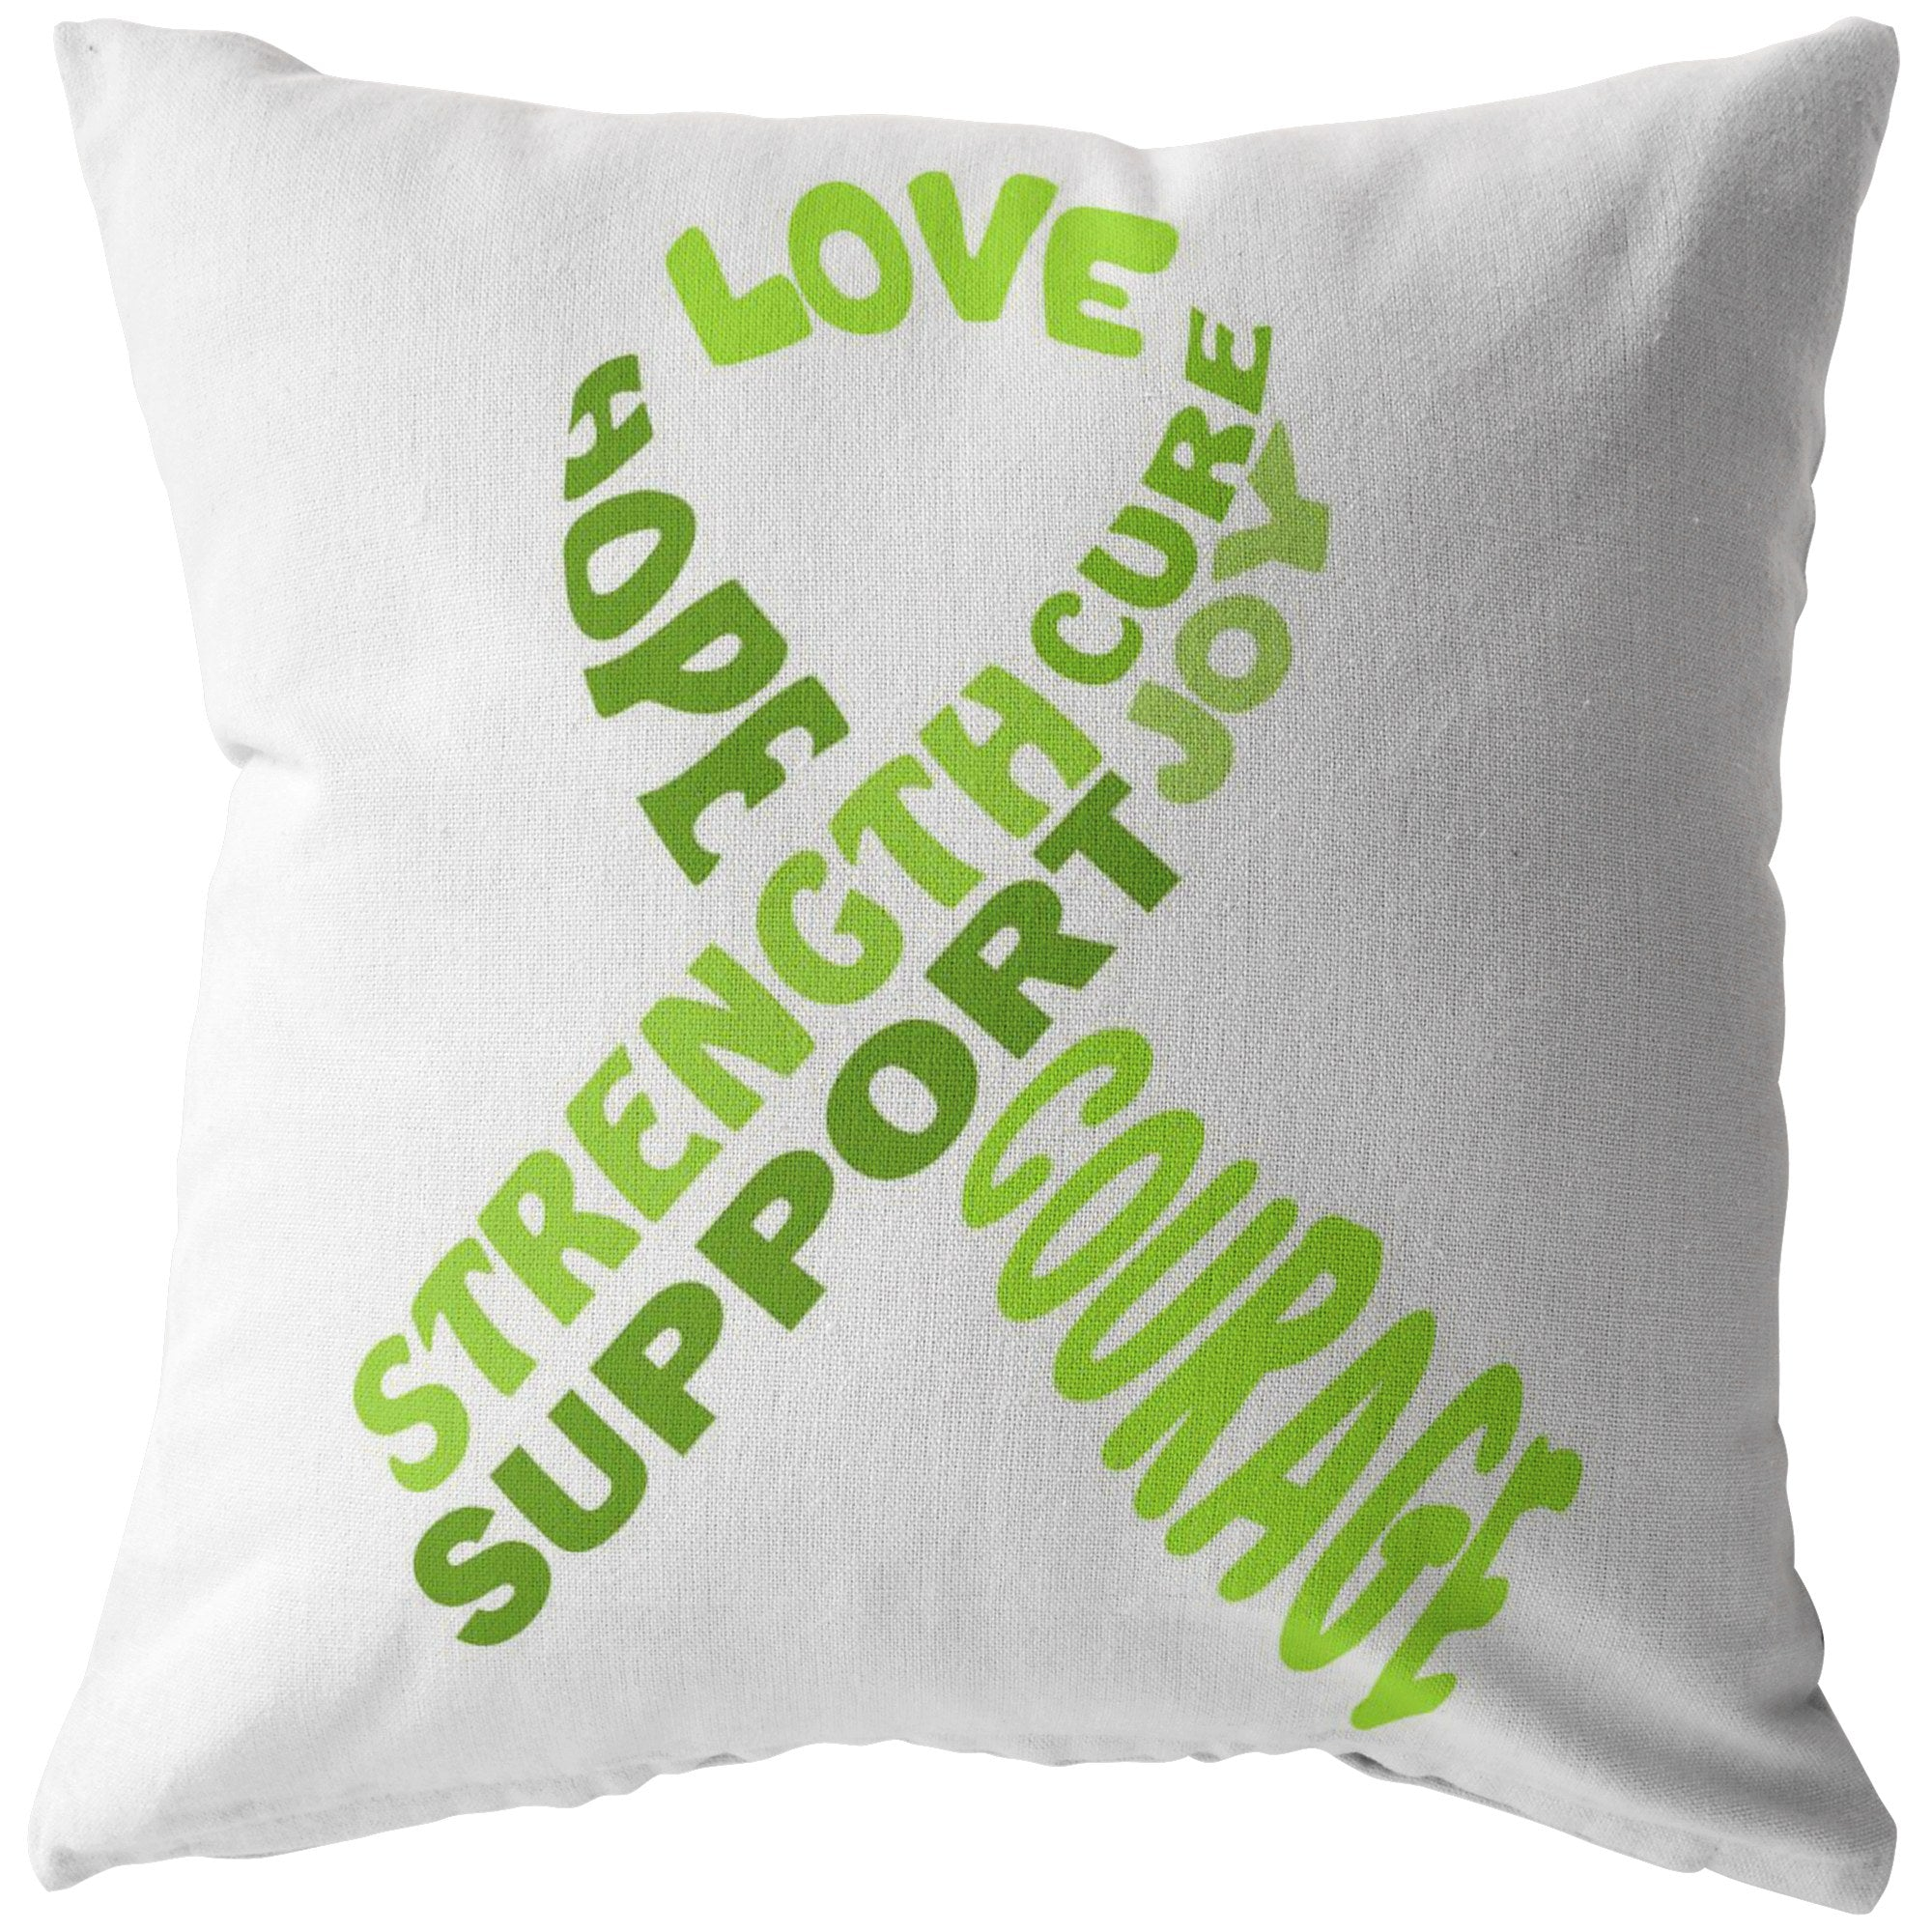 Lime Green Awareness Ribbon With Words Pillow - The Unchargeables